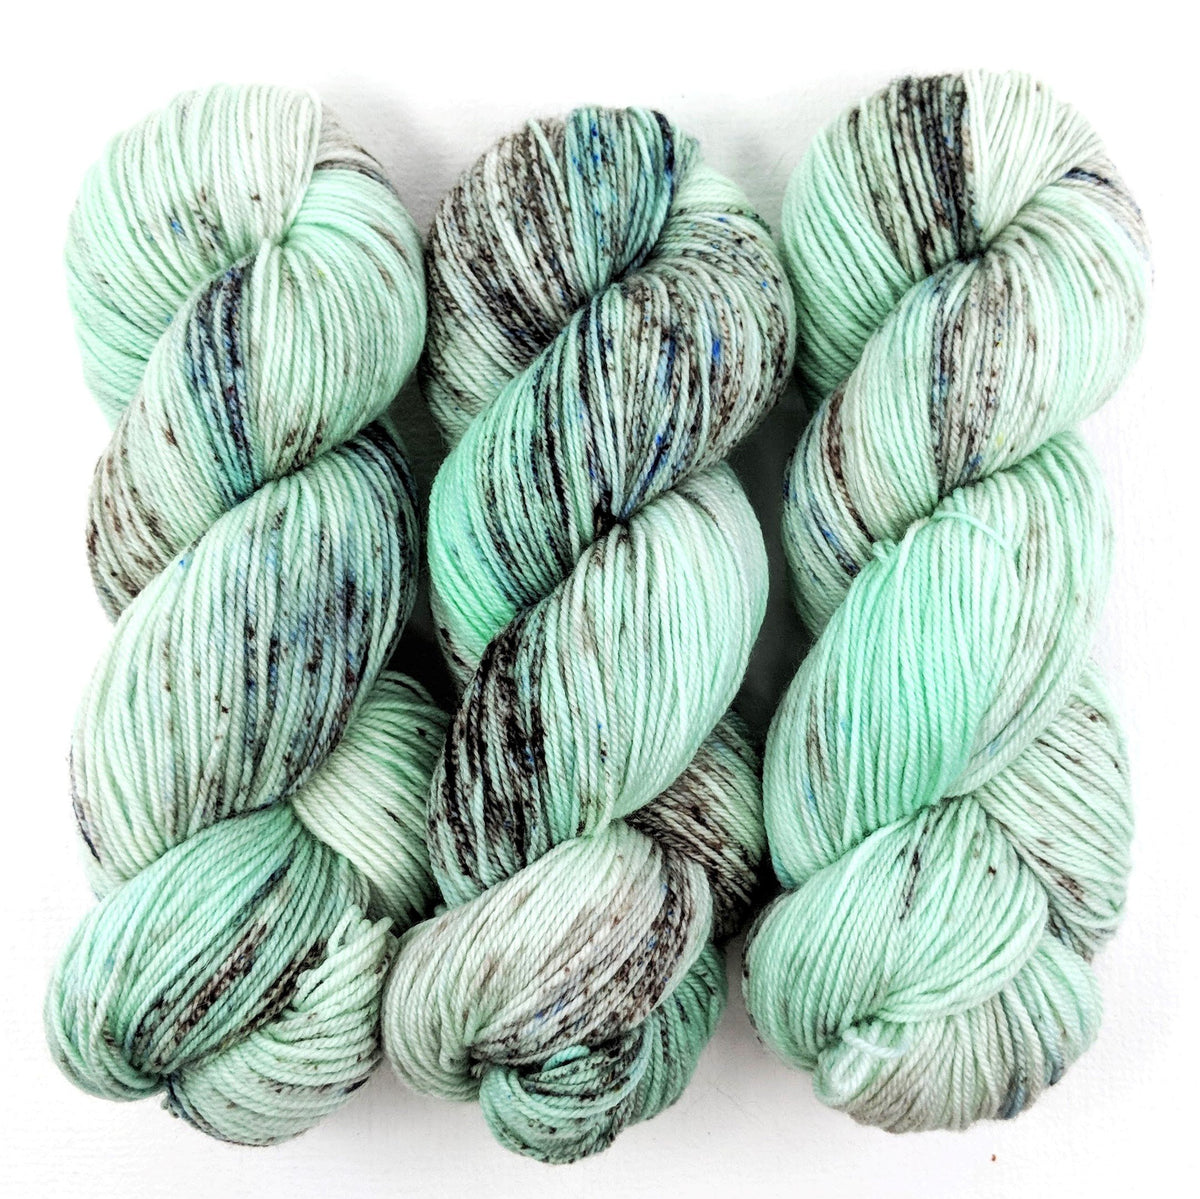 Mint Chocolate Chip - Bunny Hug Sport - Dyed Stock